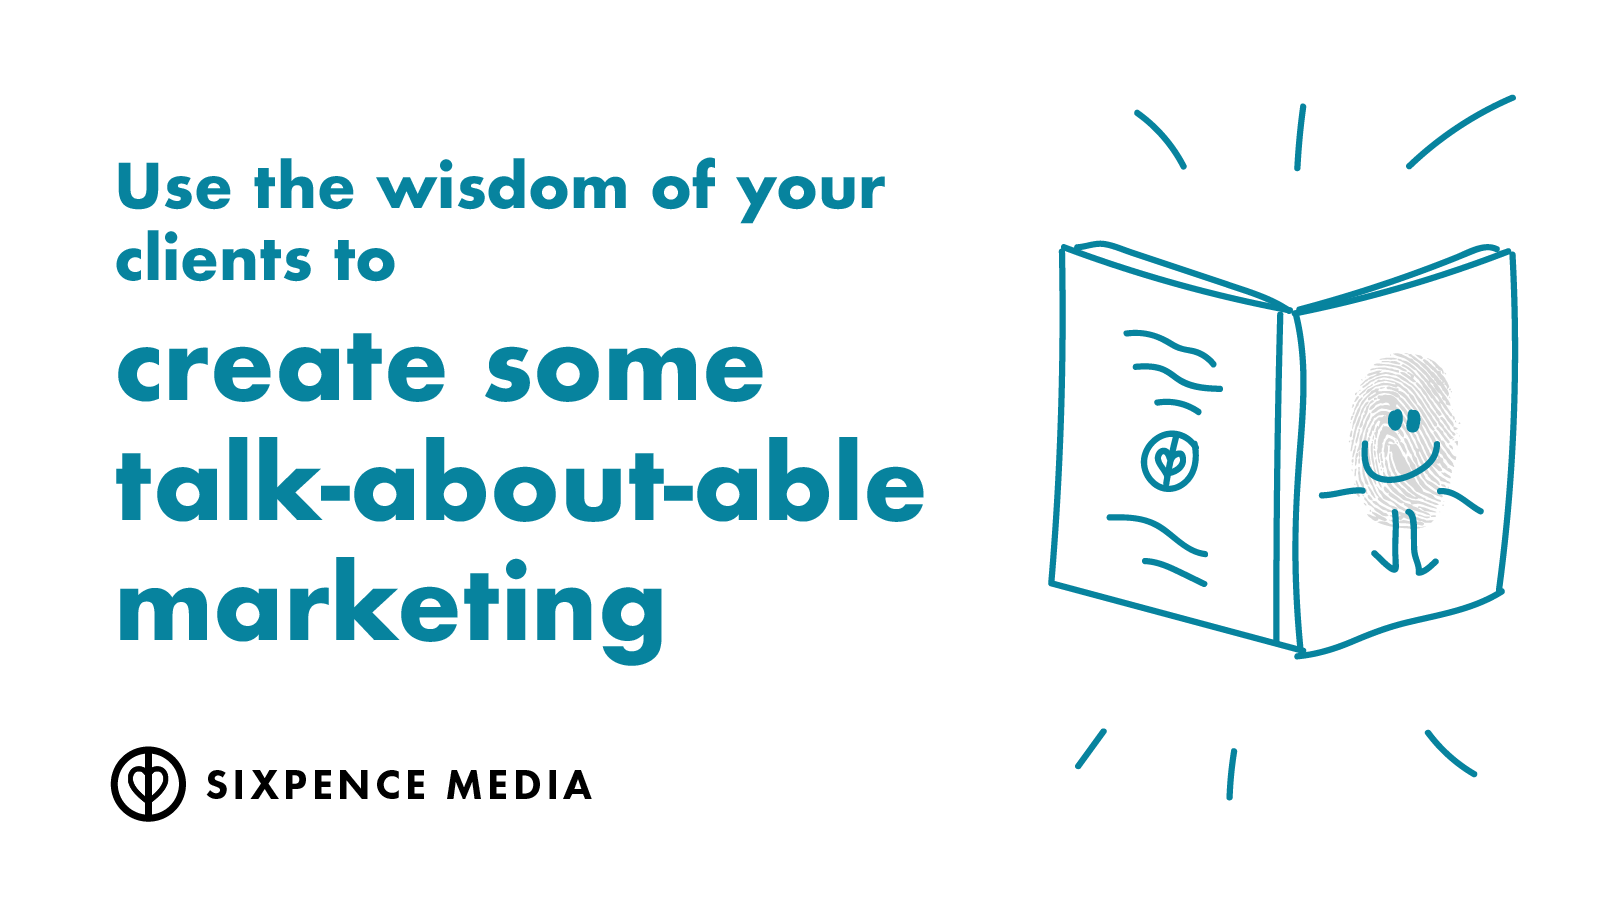 Use the wisdom of your clients to create some talk-about-able marketing